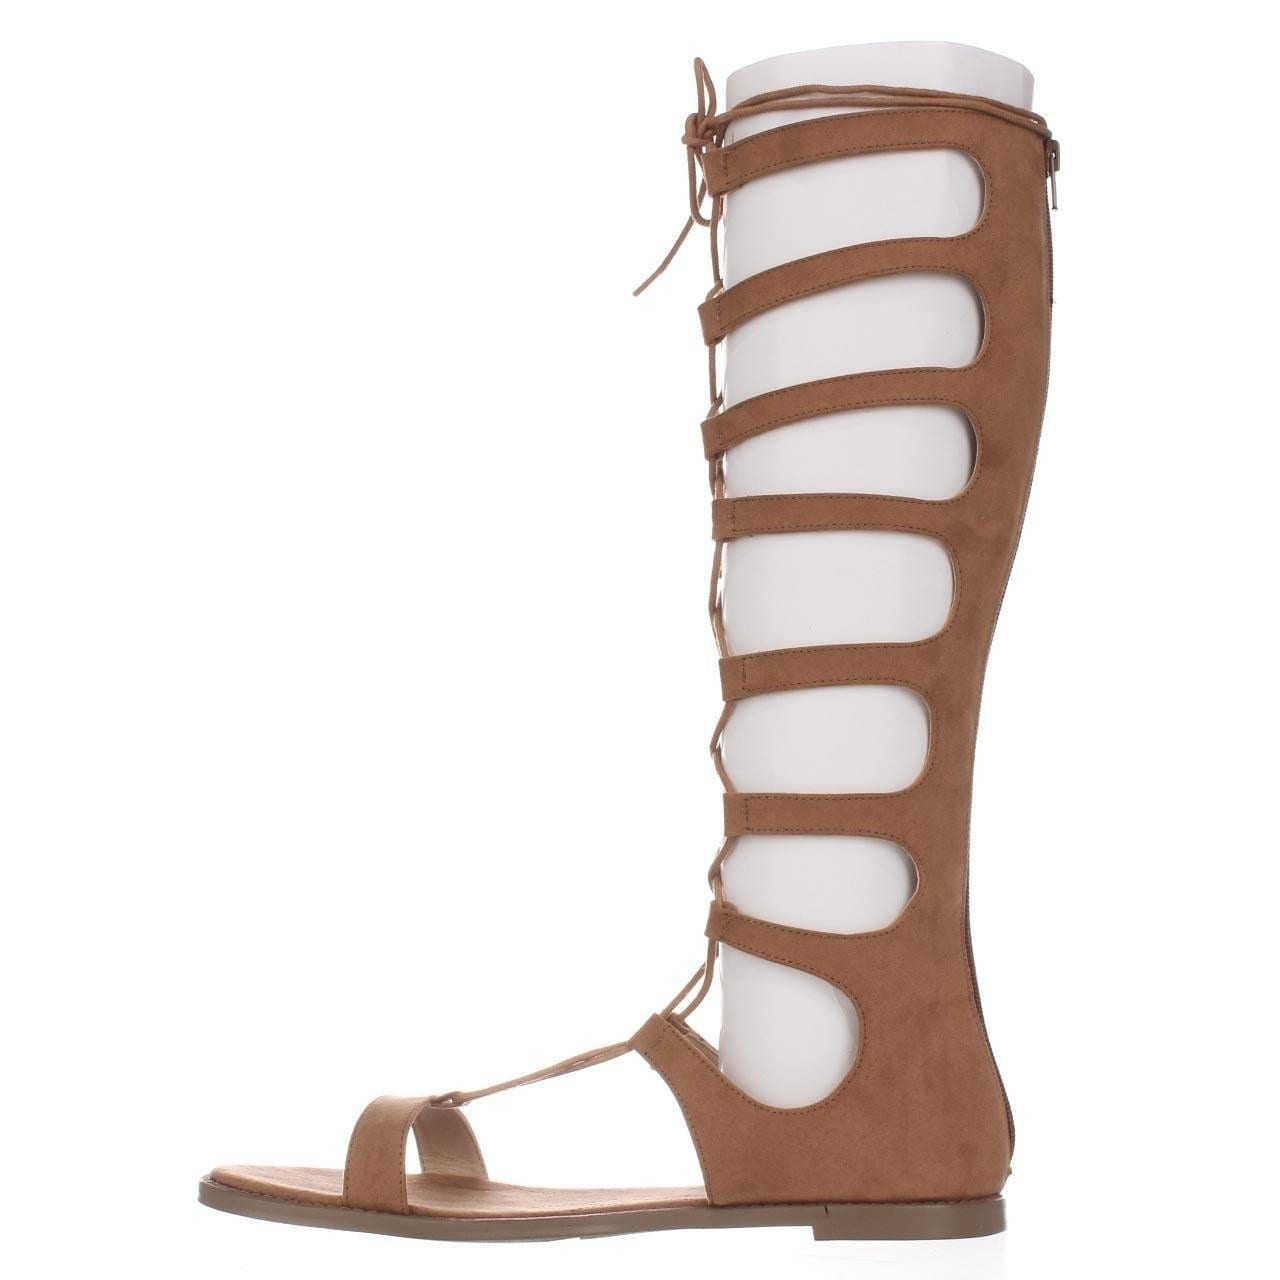 d26b33b0c2f426 Buy Chinese Laundry Women s Sandals Online at Overstock